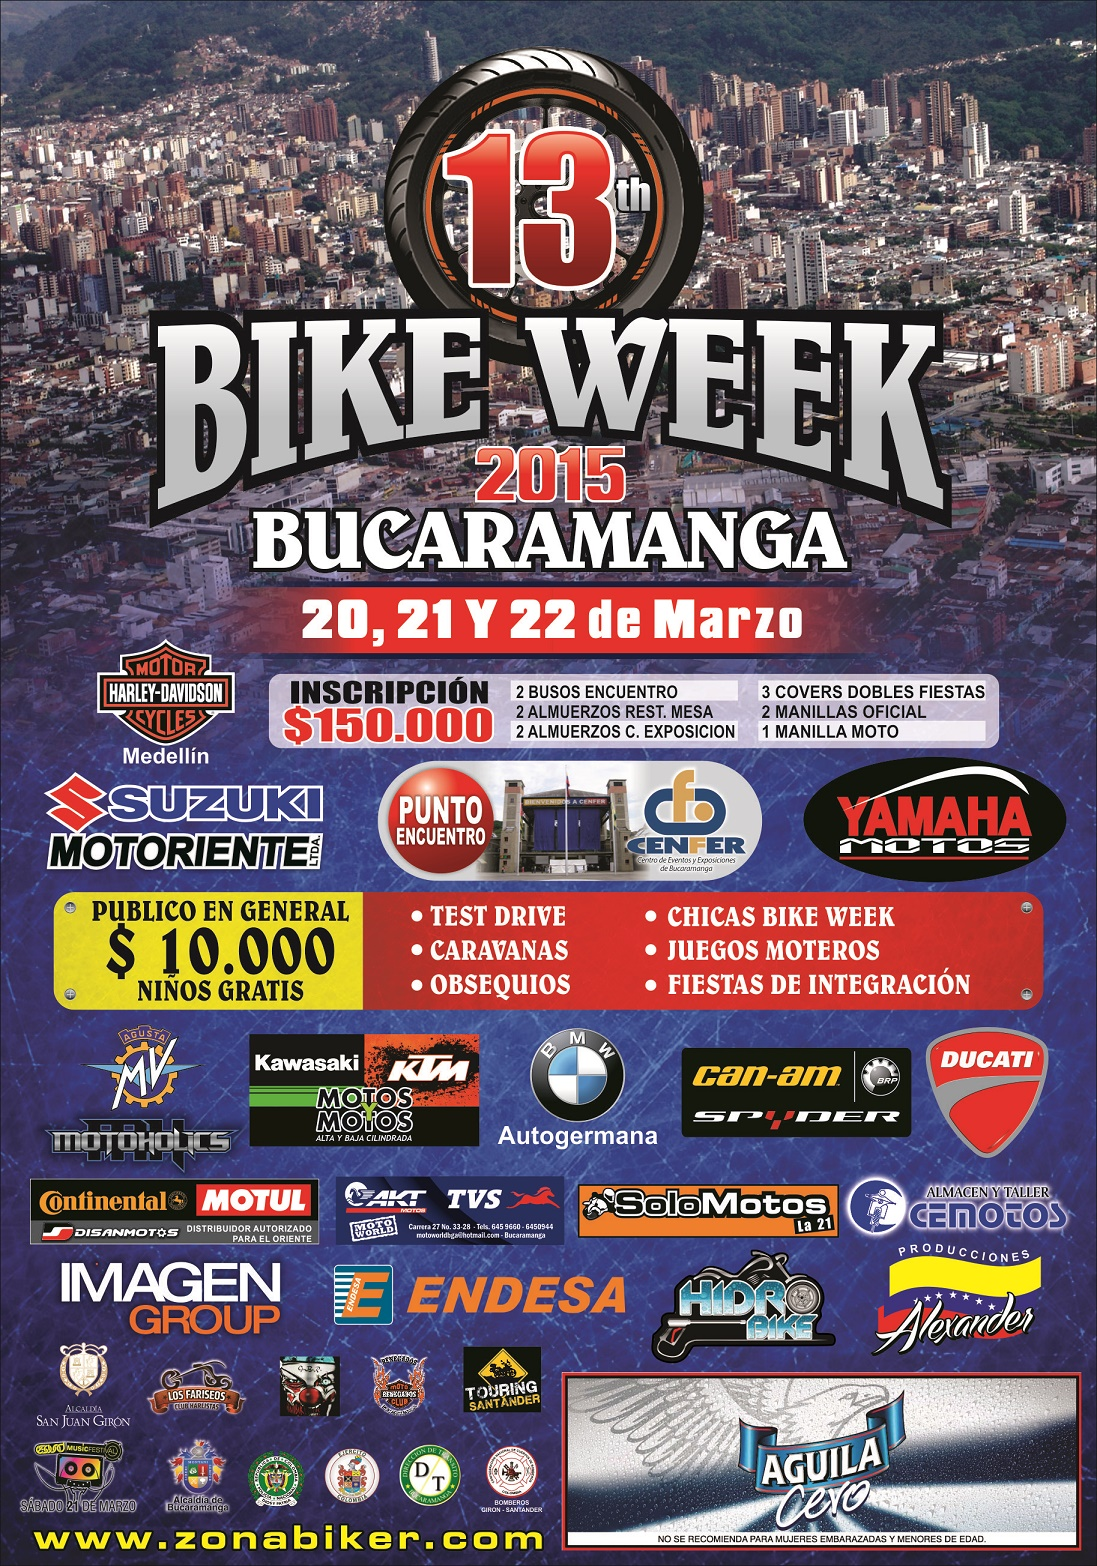 Crónica del 13th BIKE WEEK BUCARAMANGA 2015